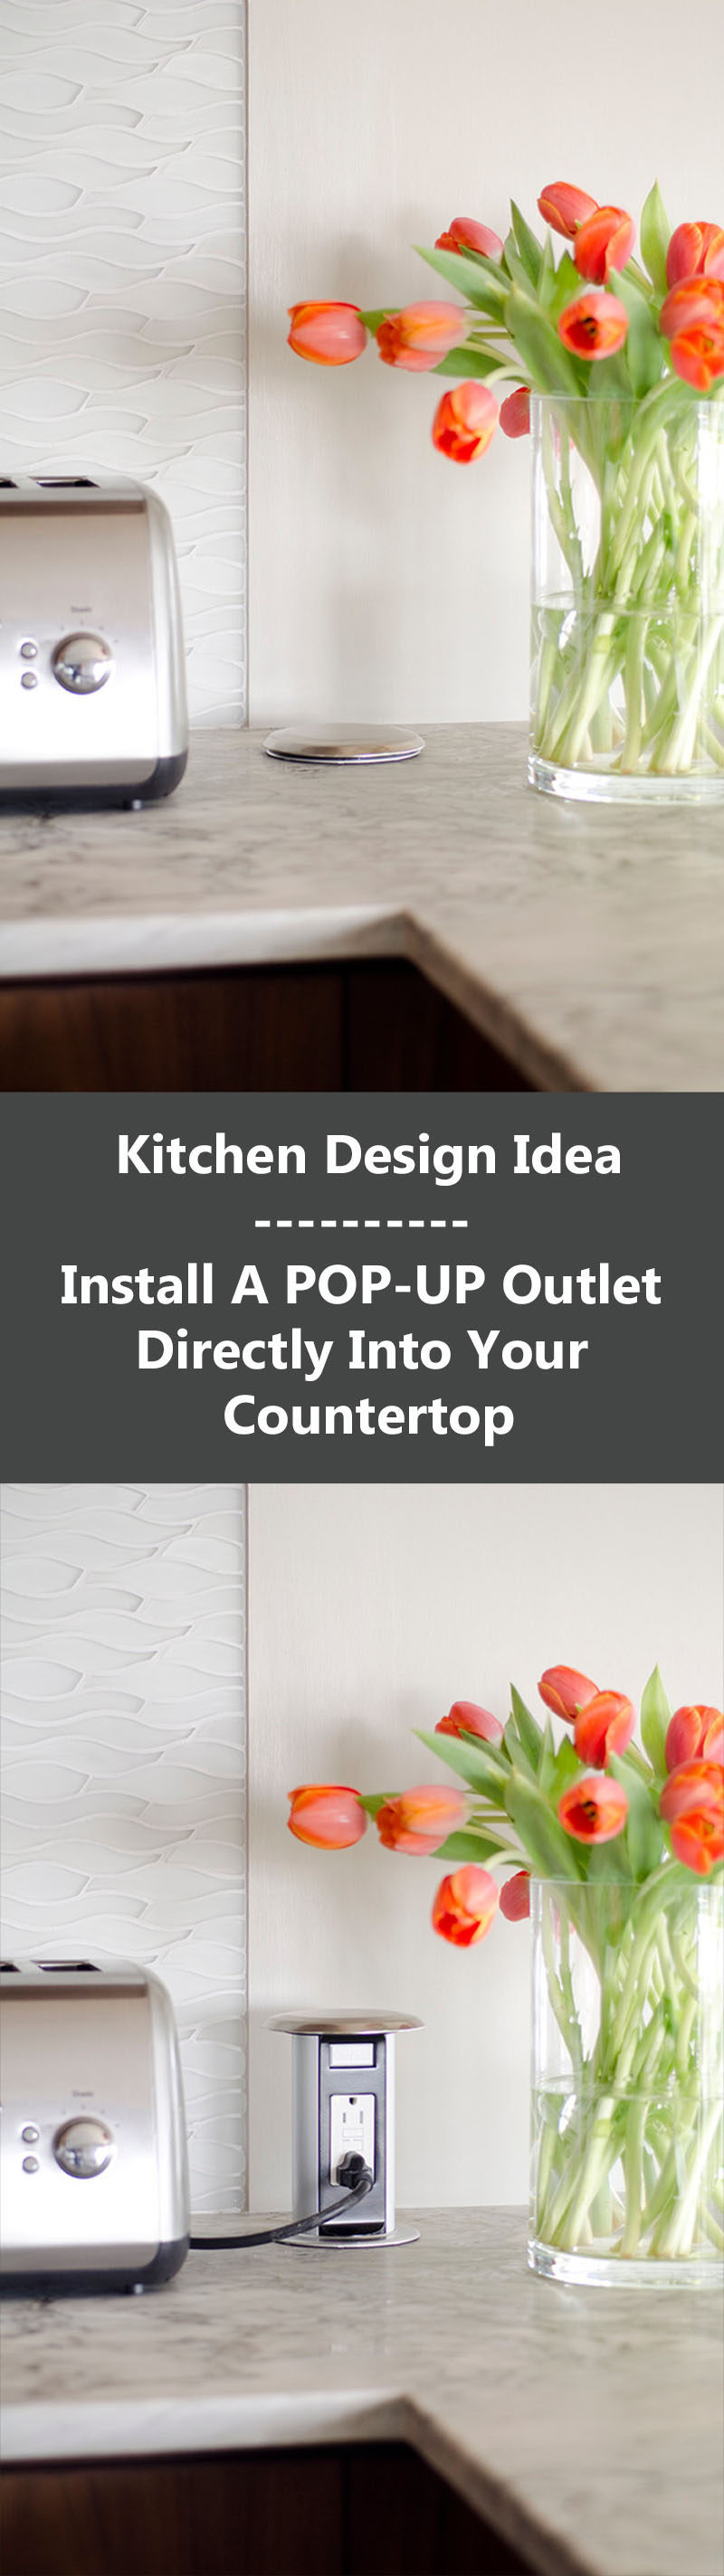 pro countertop guide construction installing concept for a pop awesome styles uncategorized electrical picture and countertops outlet up